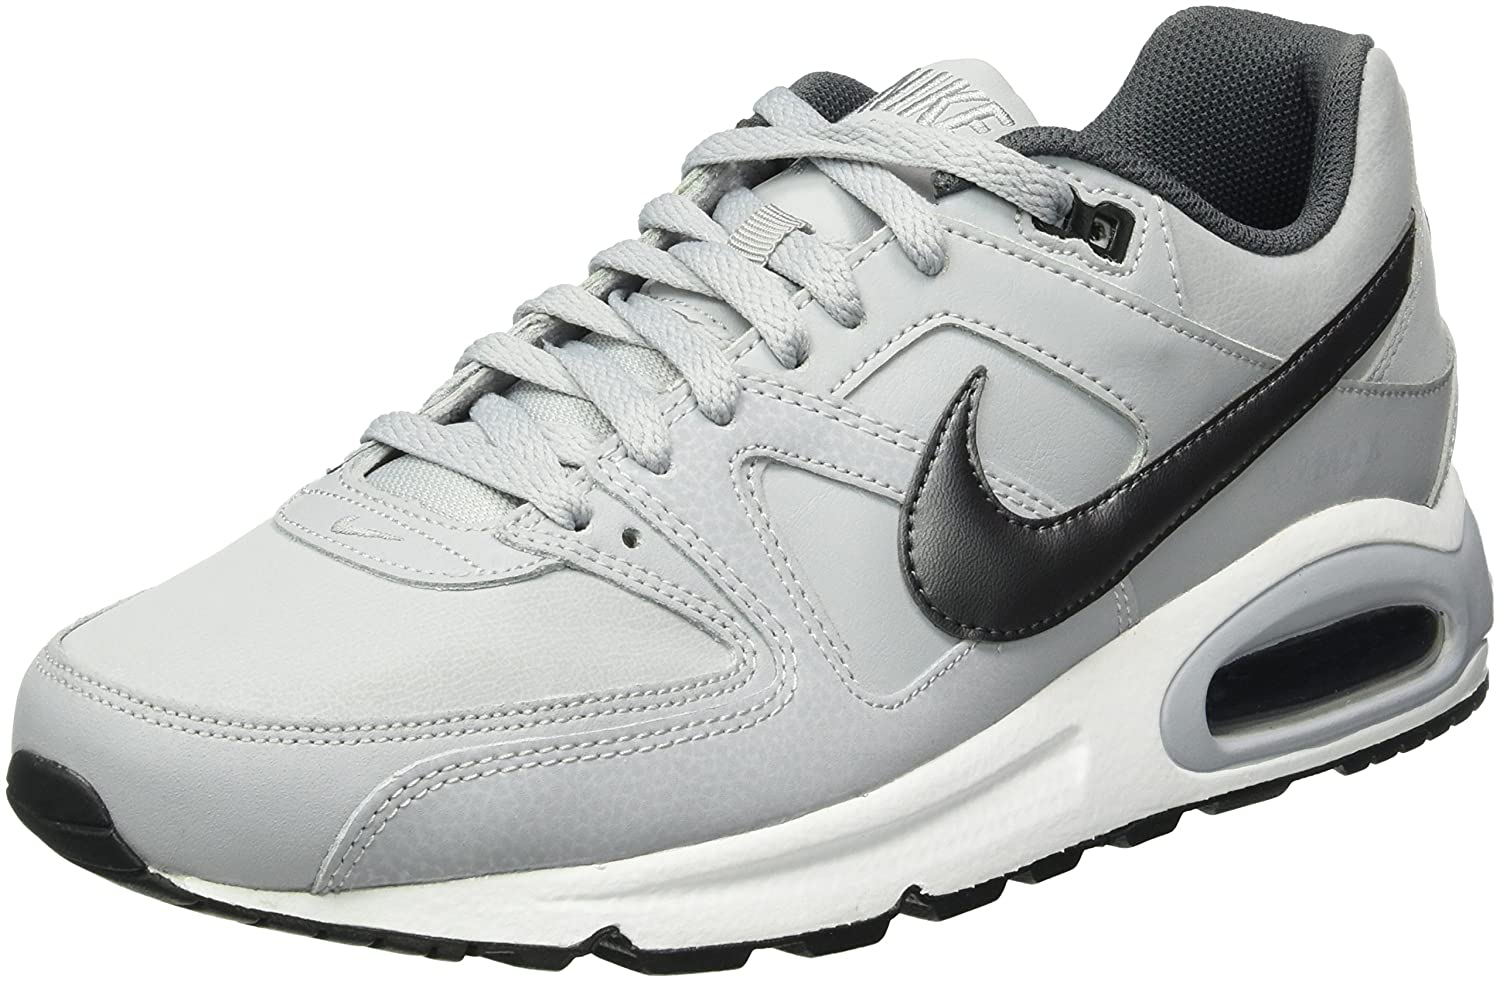 site réputé e9ad1 d80c3 Nike Men's Air Max Command Leather Sneakers